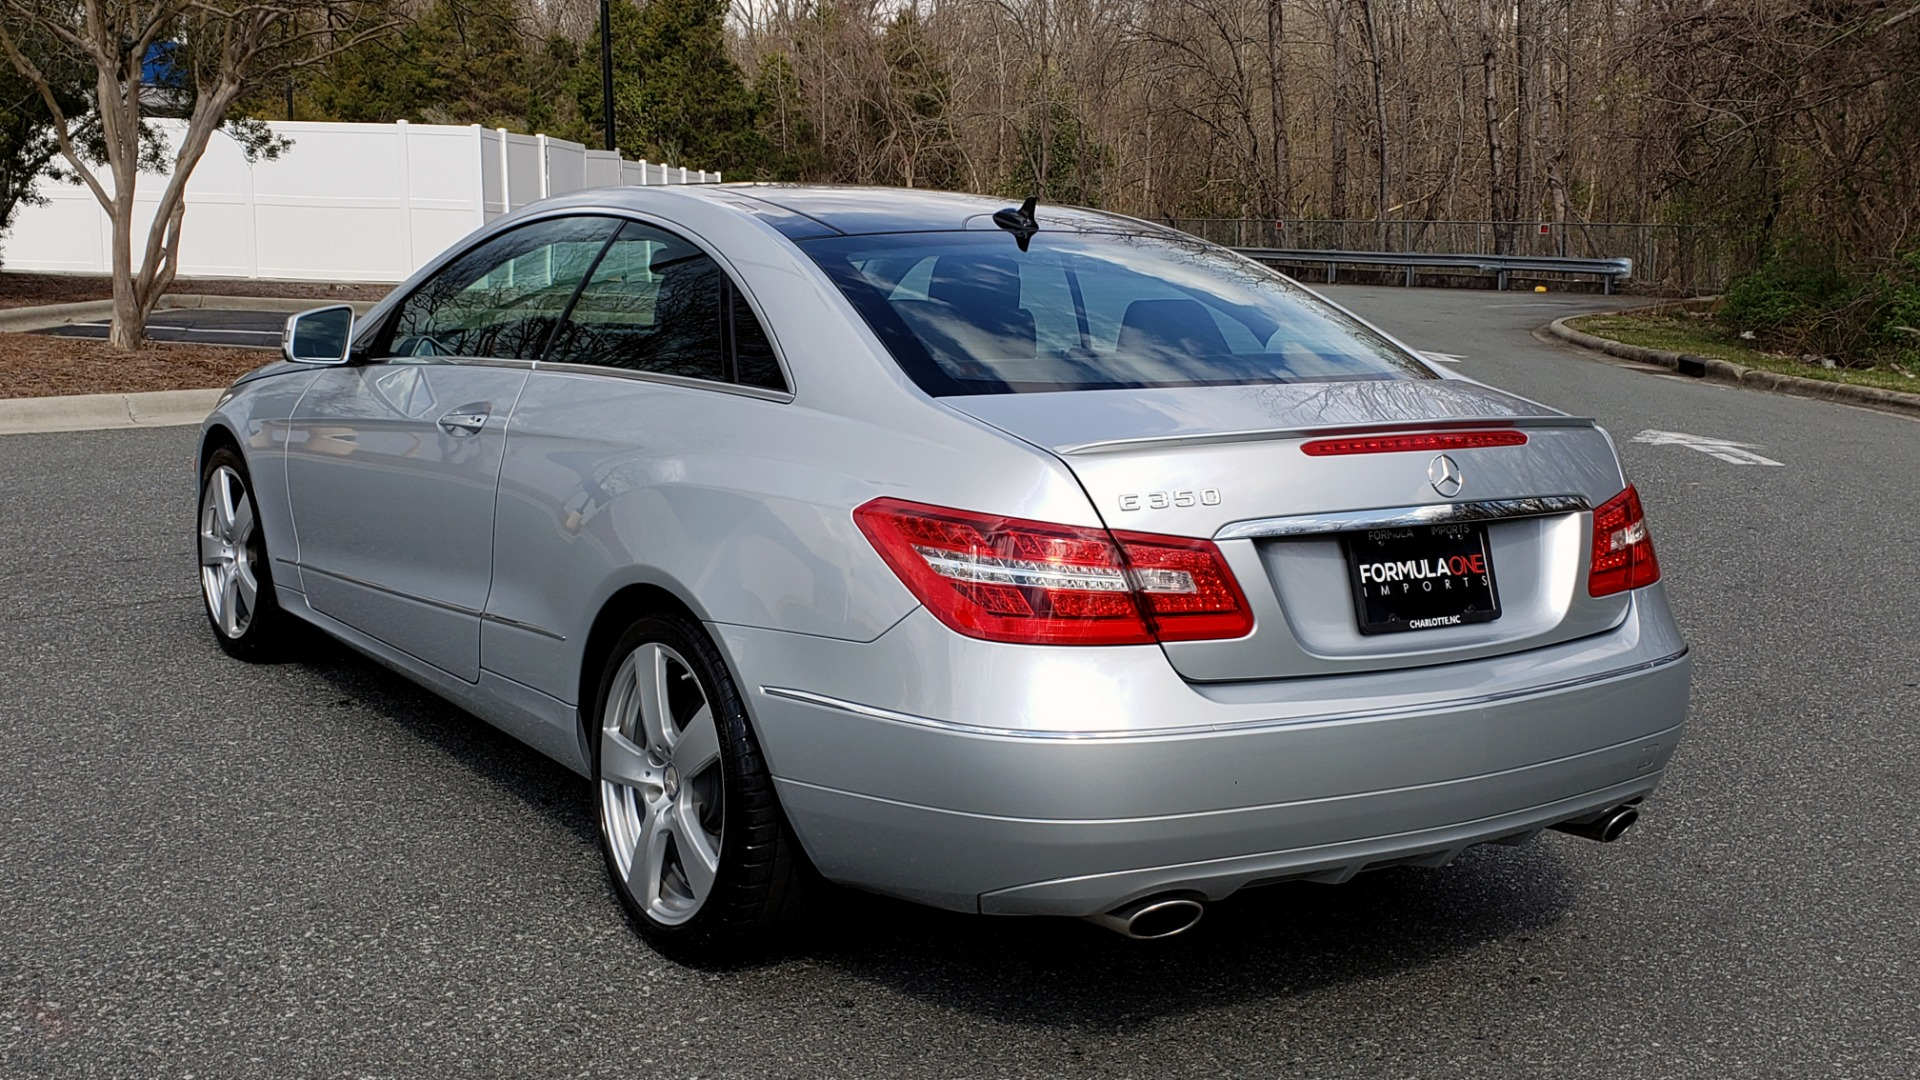 Used 2013 Mercedes-Benz E-CLASS E 350 COUPE PREM / NAV / PANO-ROFF / KEYLESS-GO / REARVIEW for sale Sold at Formula Imports in Charlotte NC 28227 4